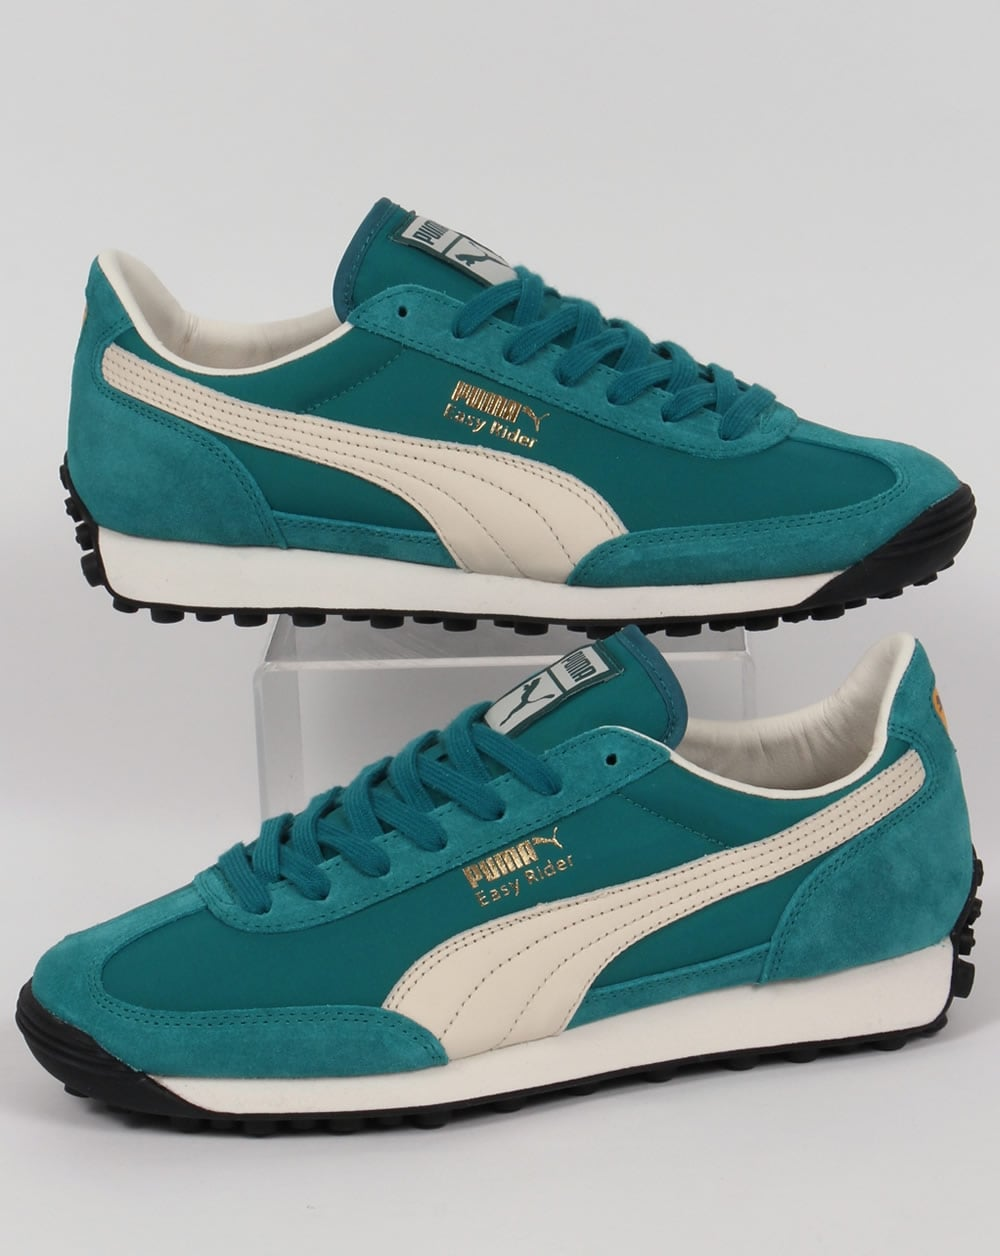 Puma Easy Rider VTG Trainers Harbour Blue/White